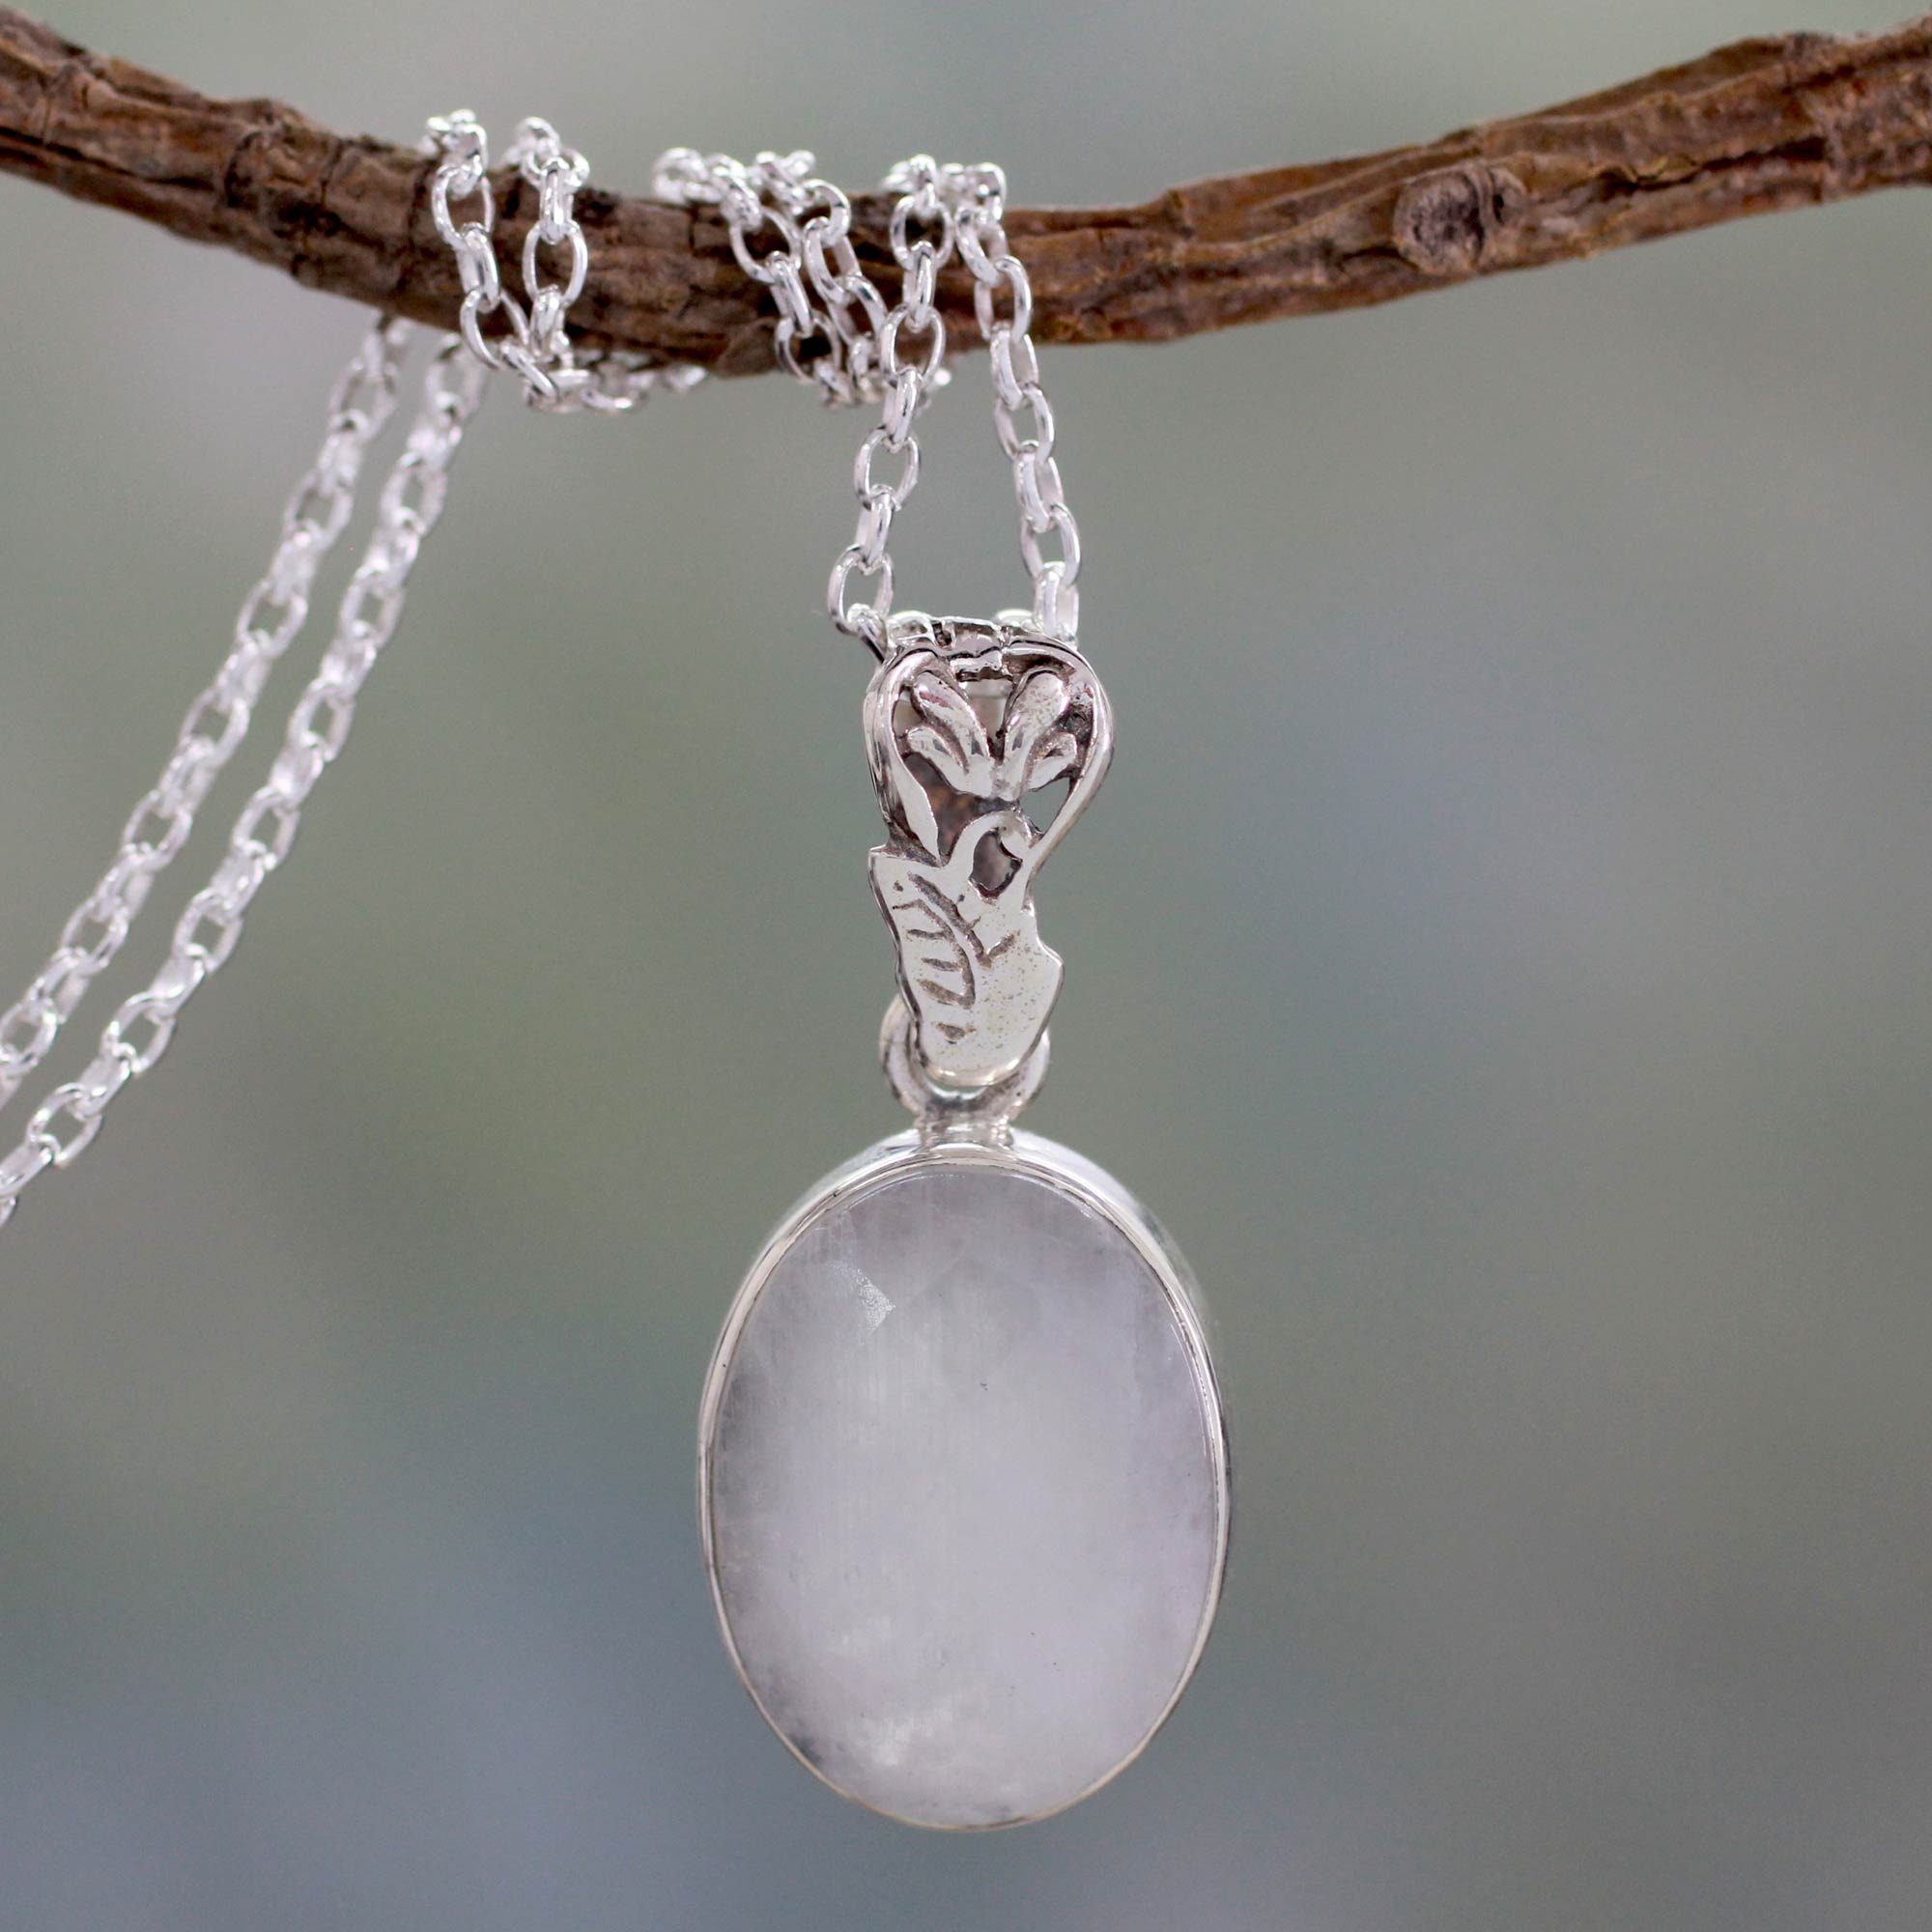 Artisan made silver and rainbow moonstone necklace radiant facets artisan made silver and rainbow moonstone necklace radiant facets novica aloadofball